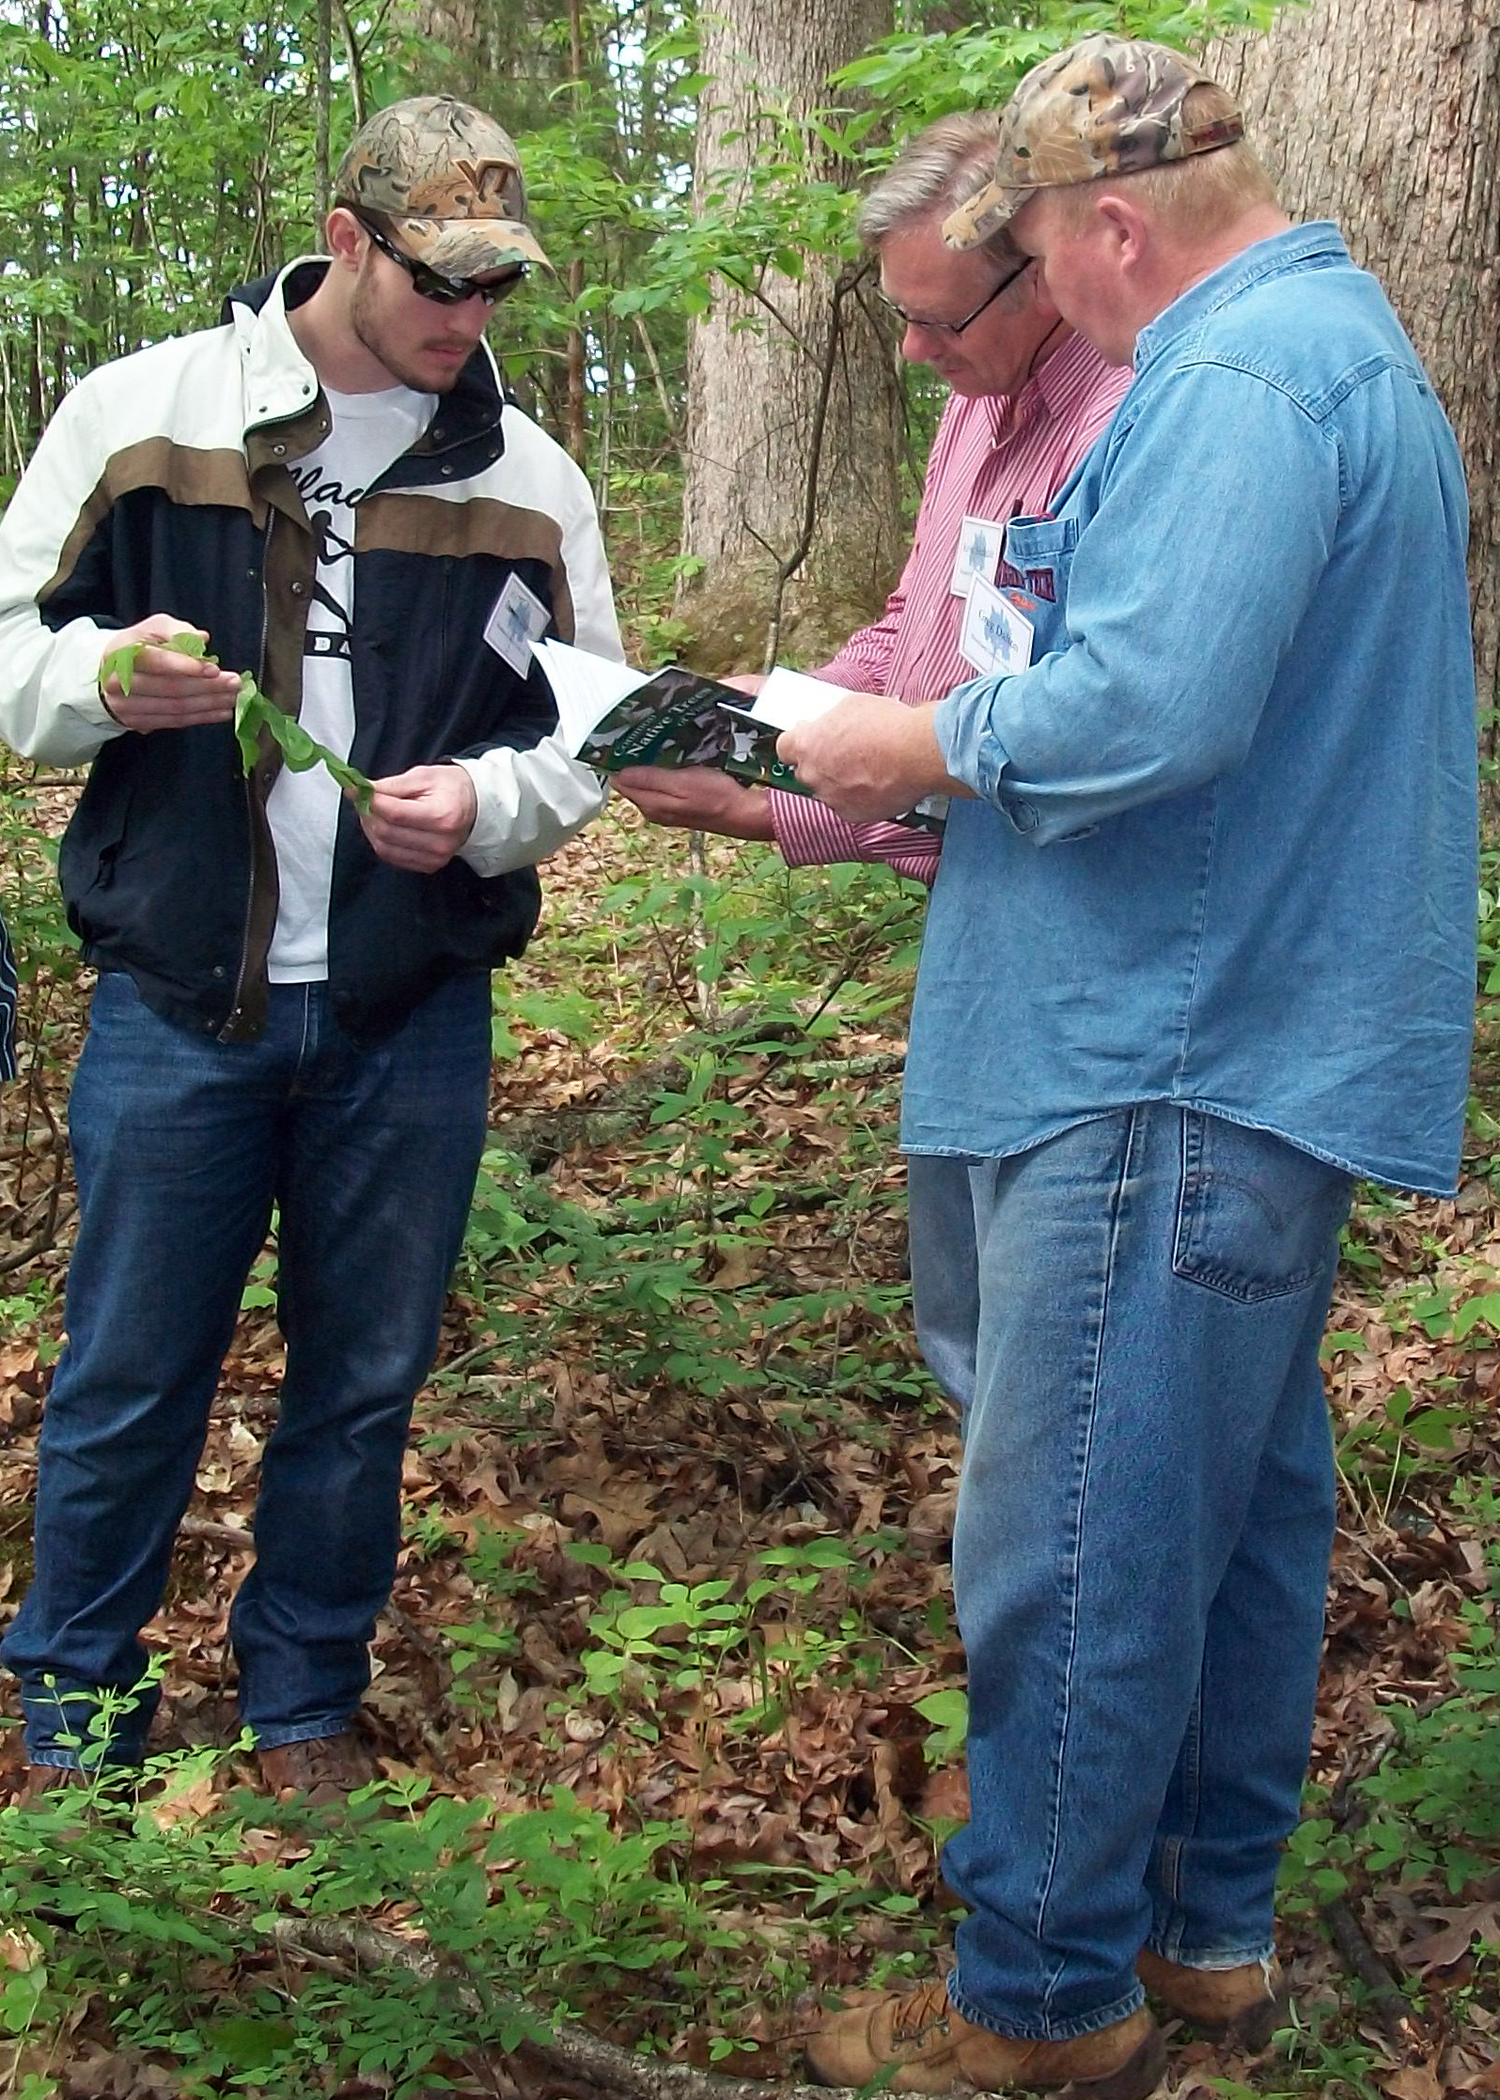 Three people standing in a wooded setting. One holds a booklet; another holds a leaf.